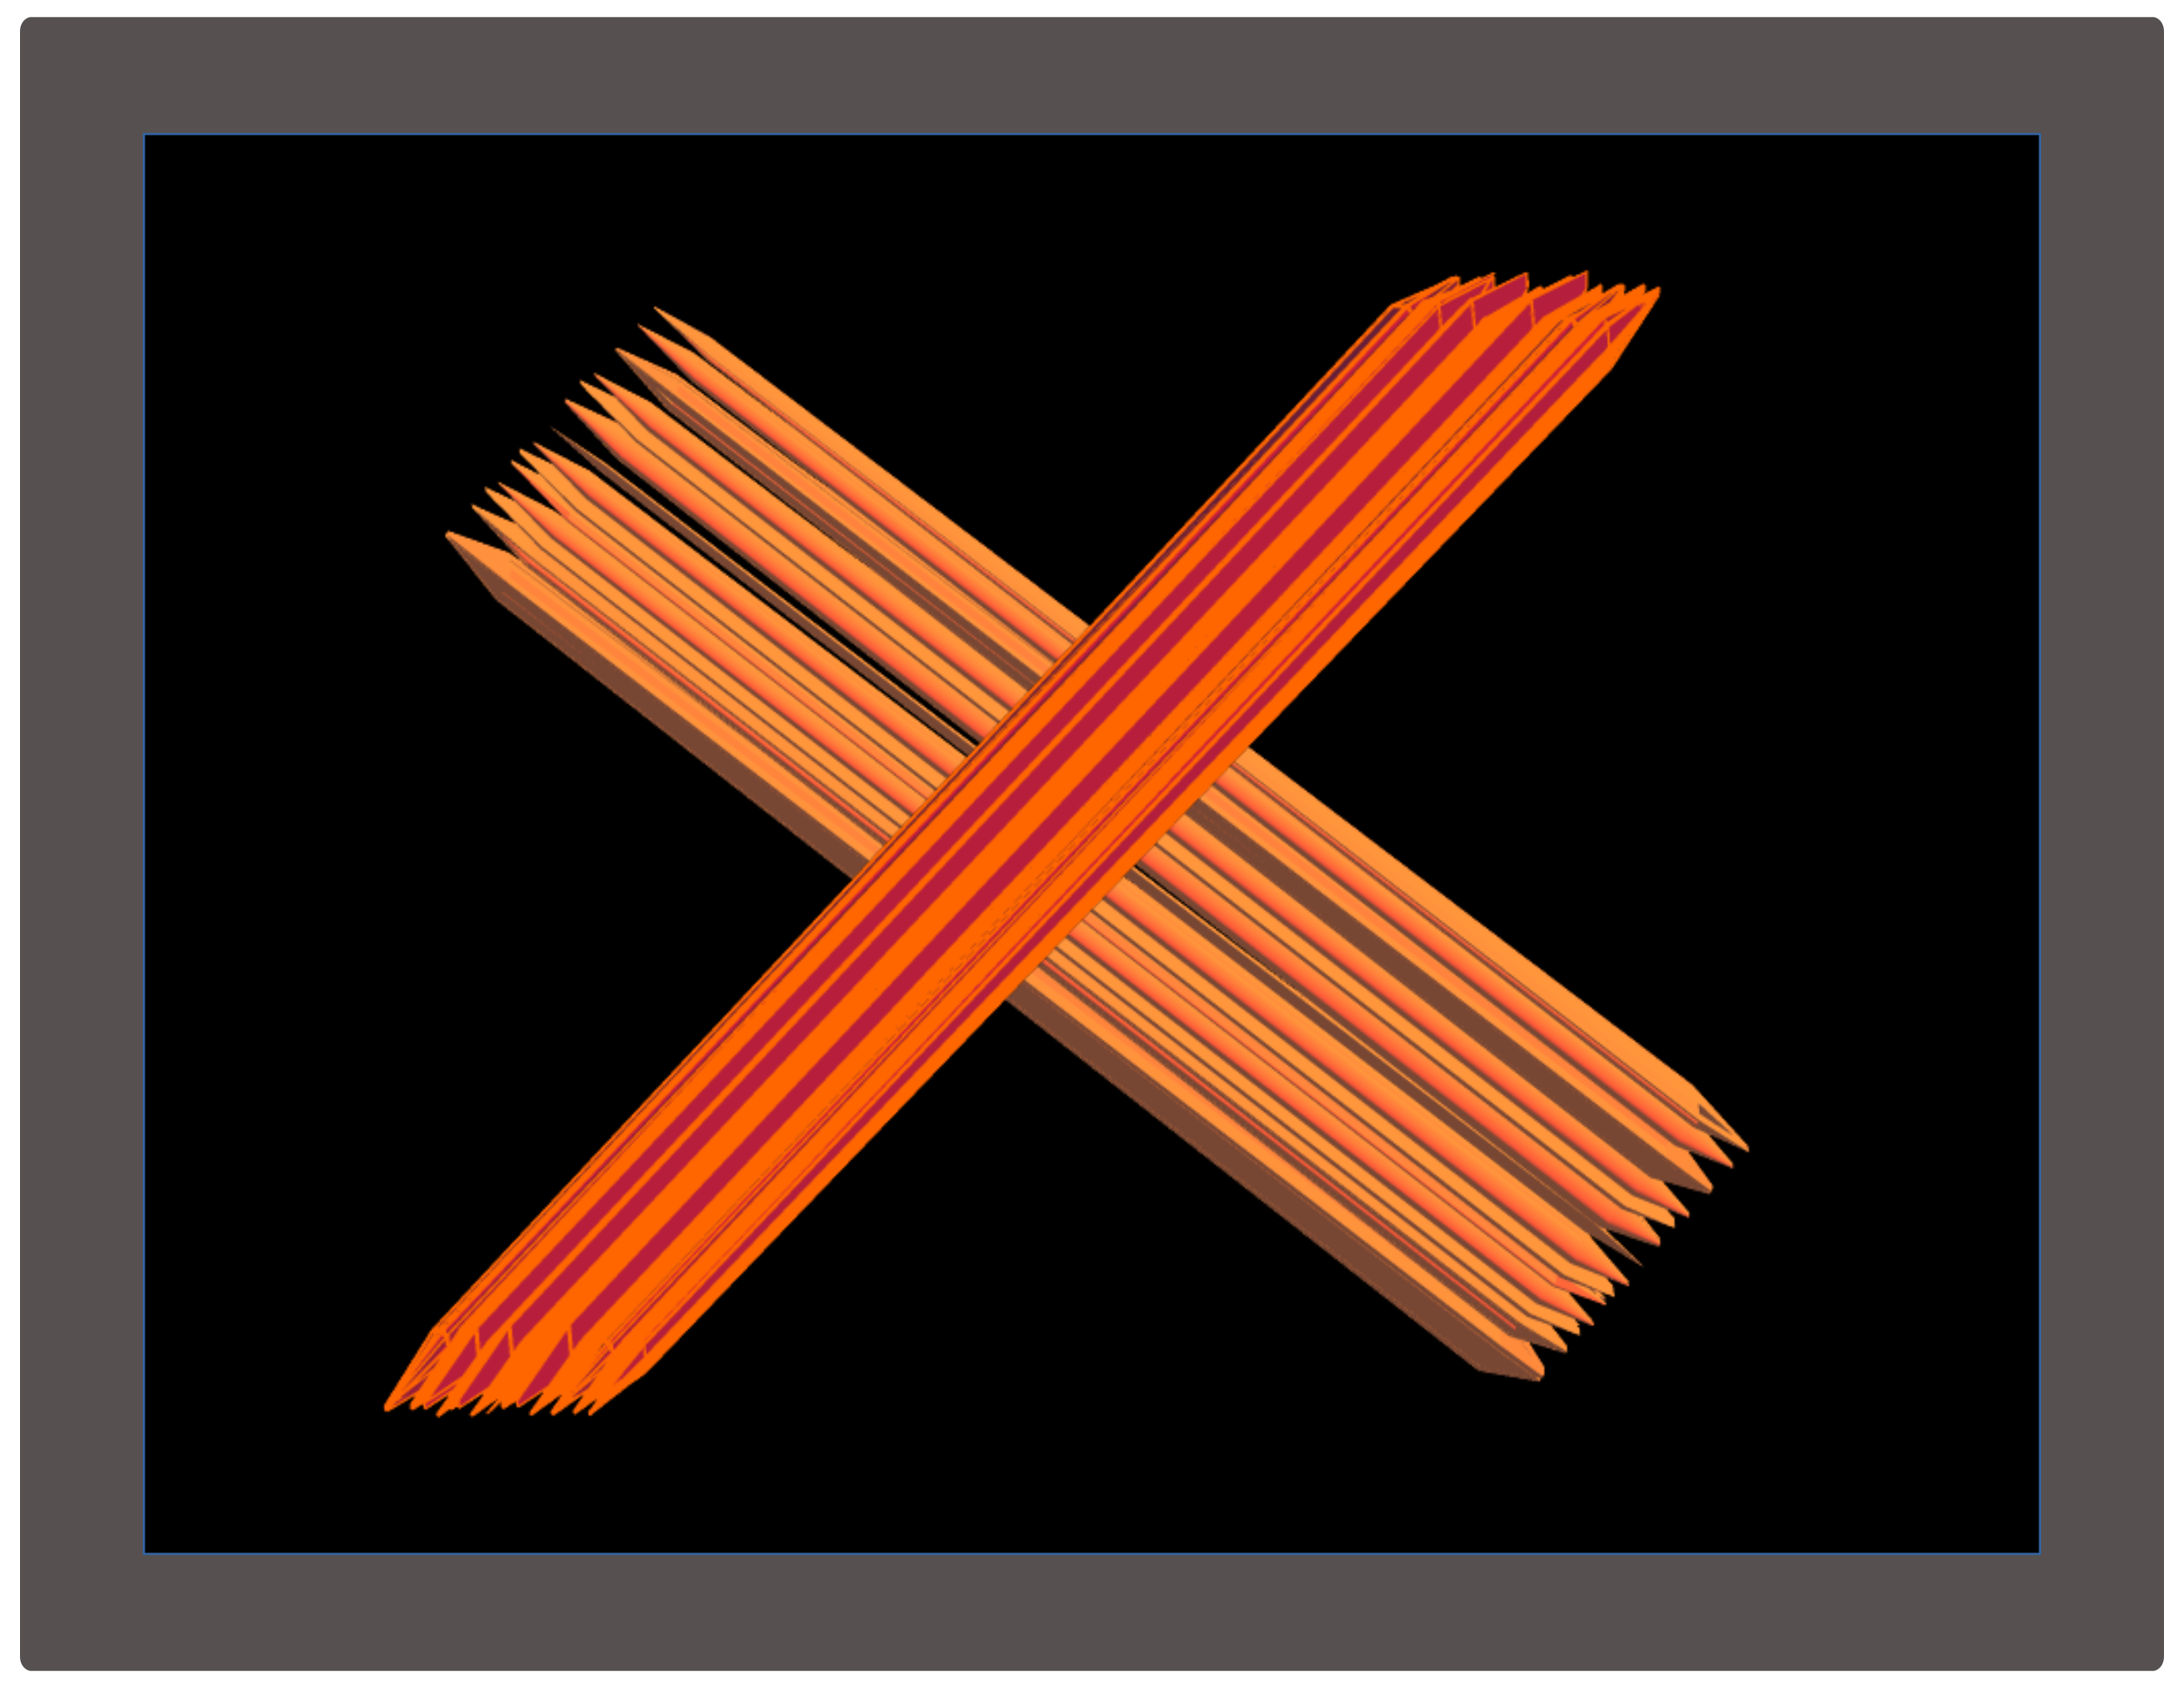 The X Symbol by zerozip